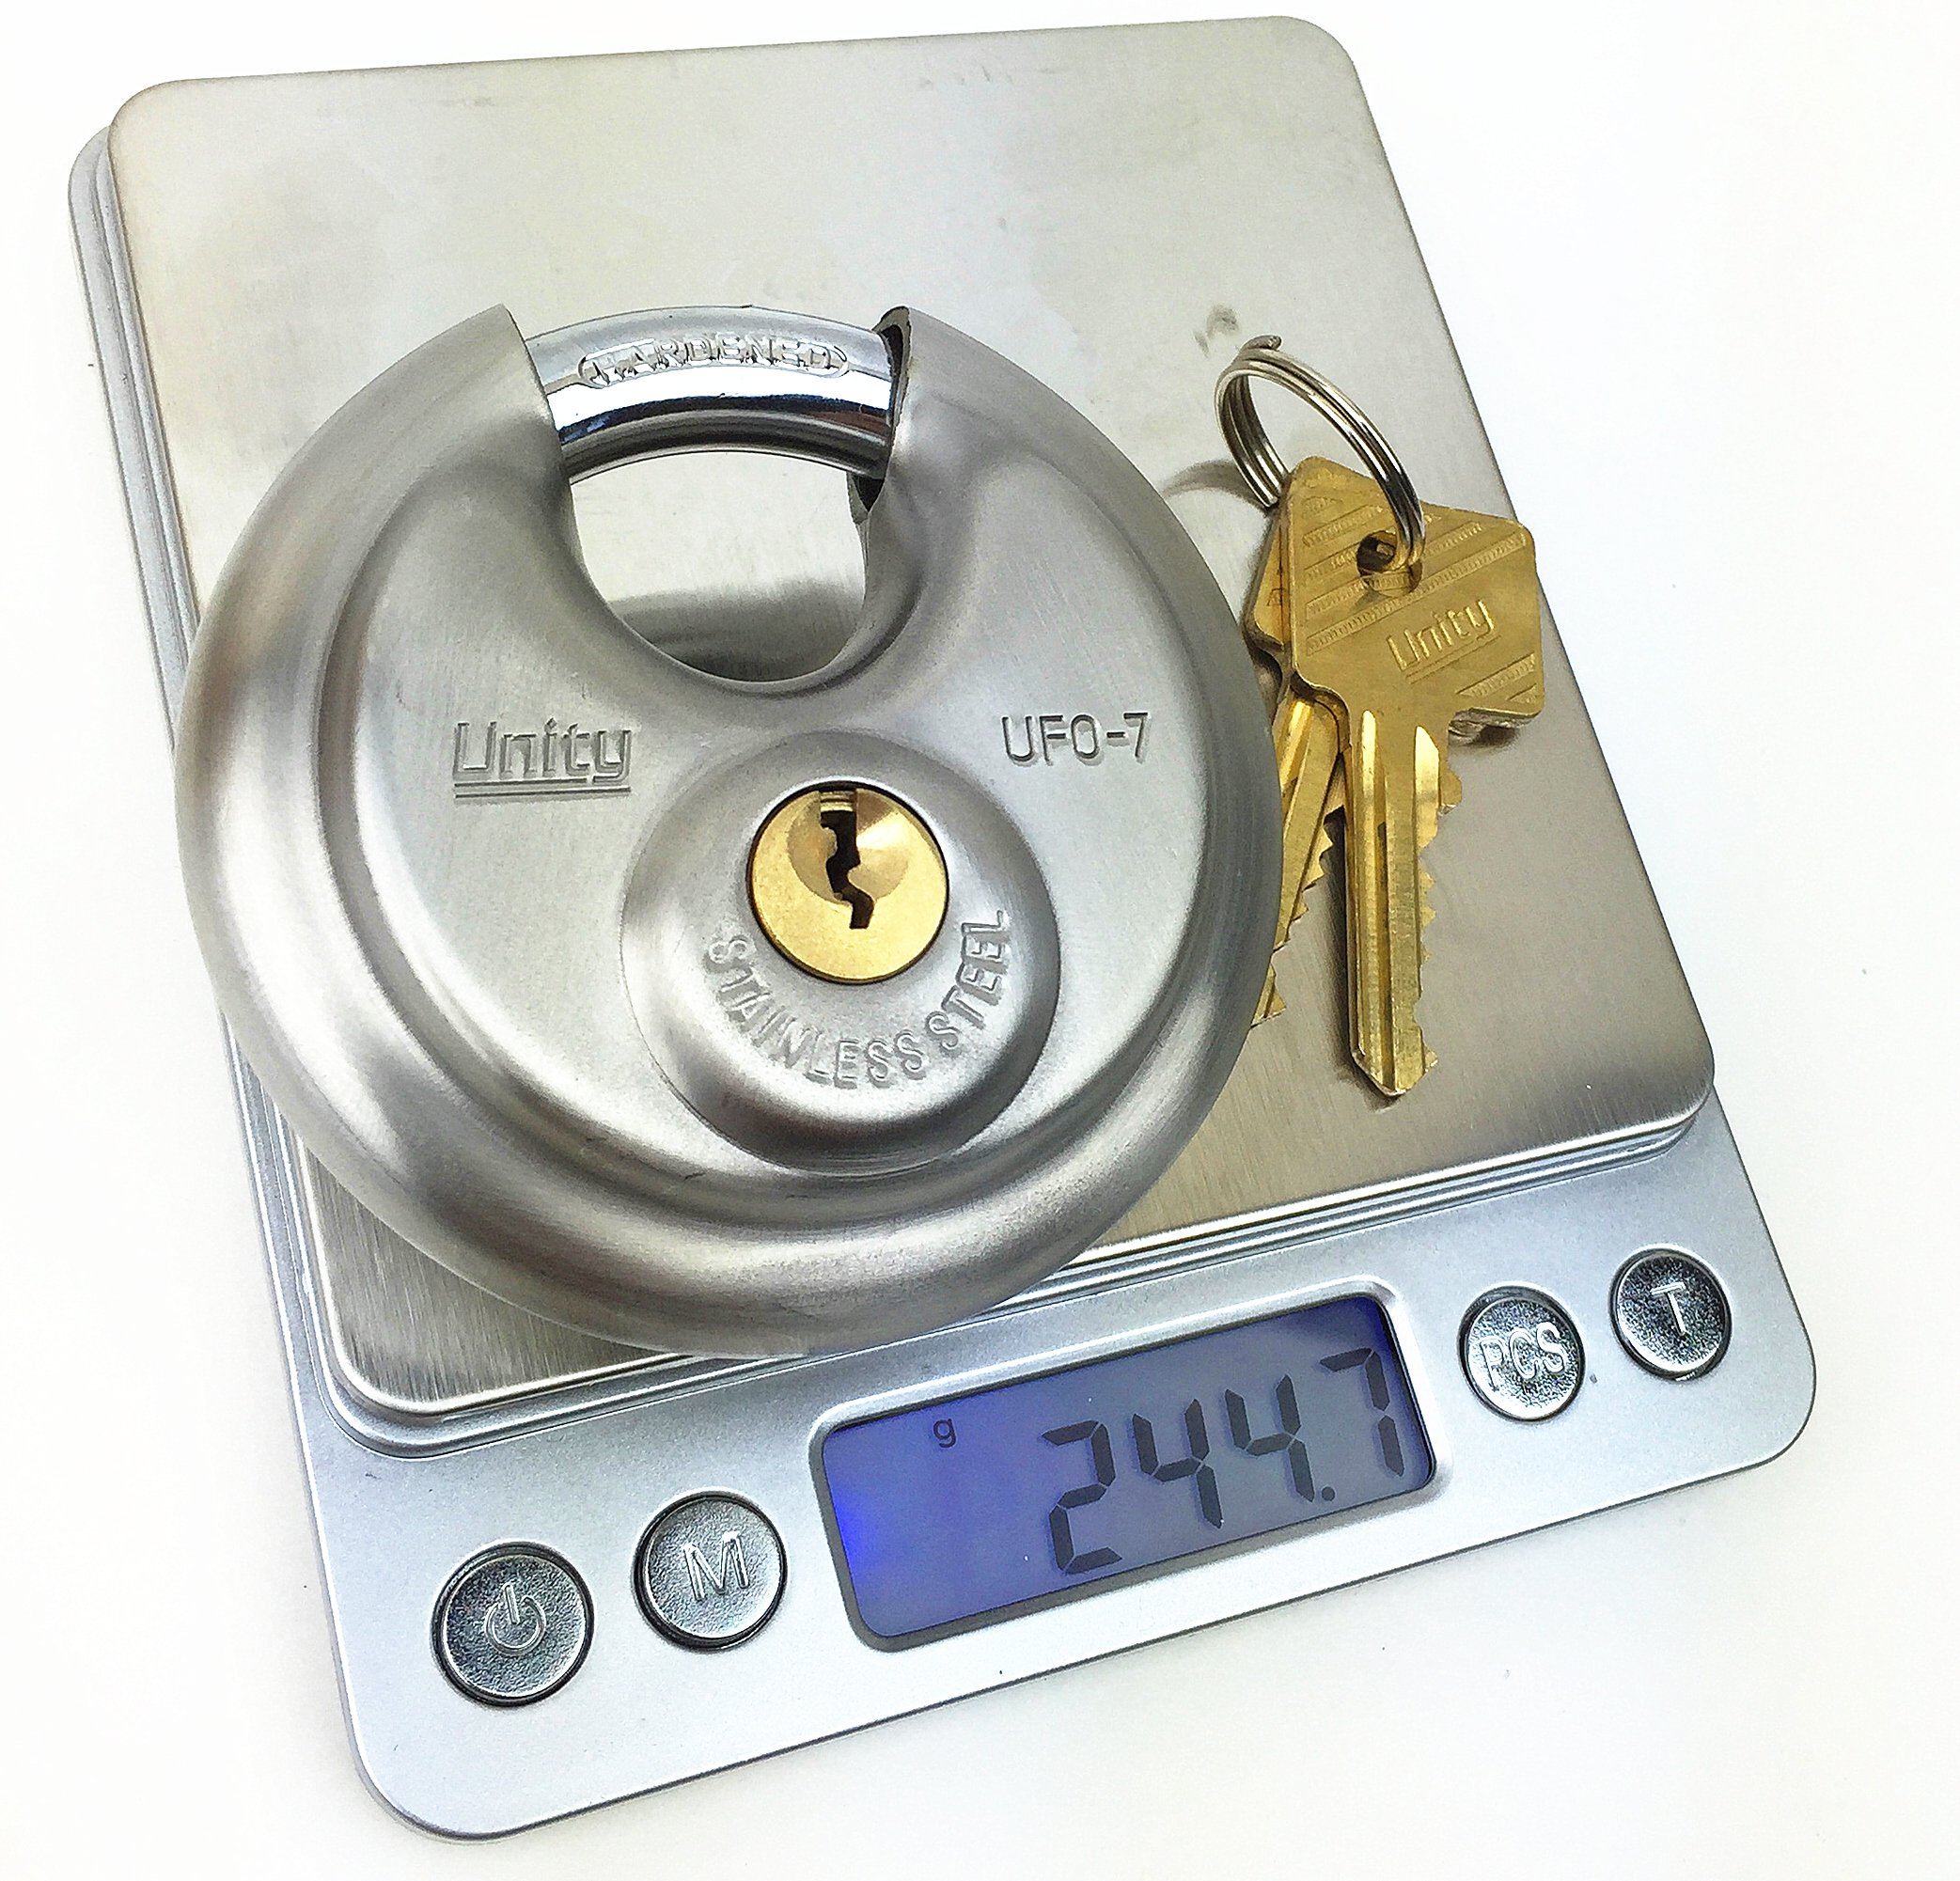 24pcs Key Differ Disc Padlock 2-3/4'', Stainless steel, Trailer lock, Storage lock, Round lock